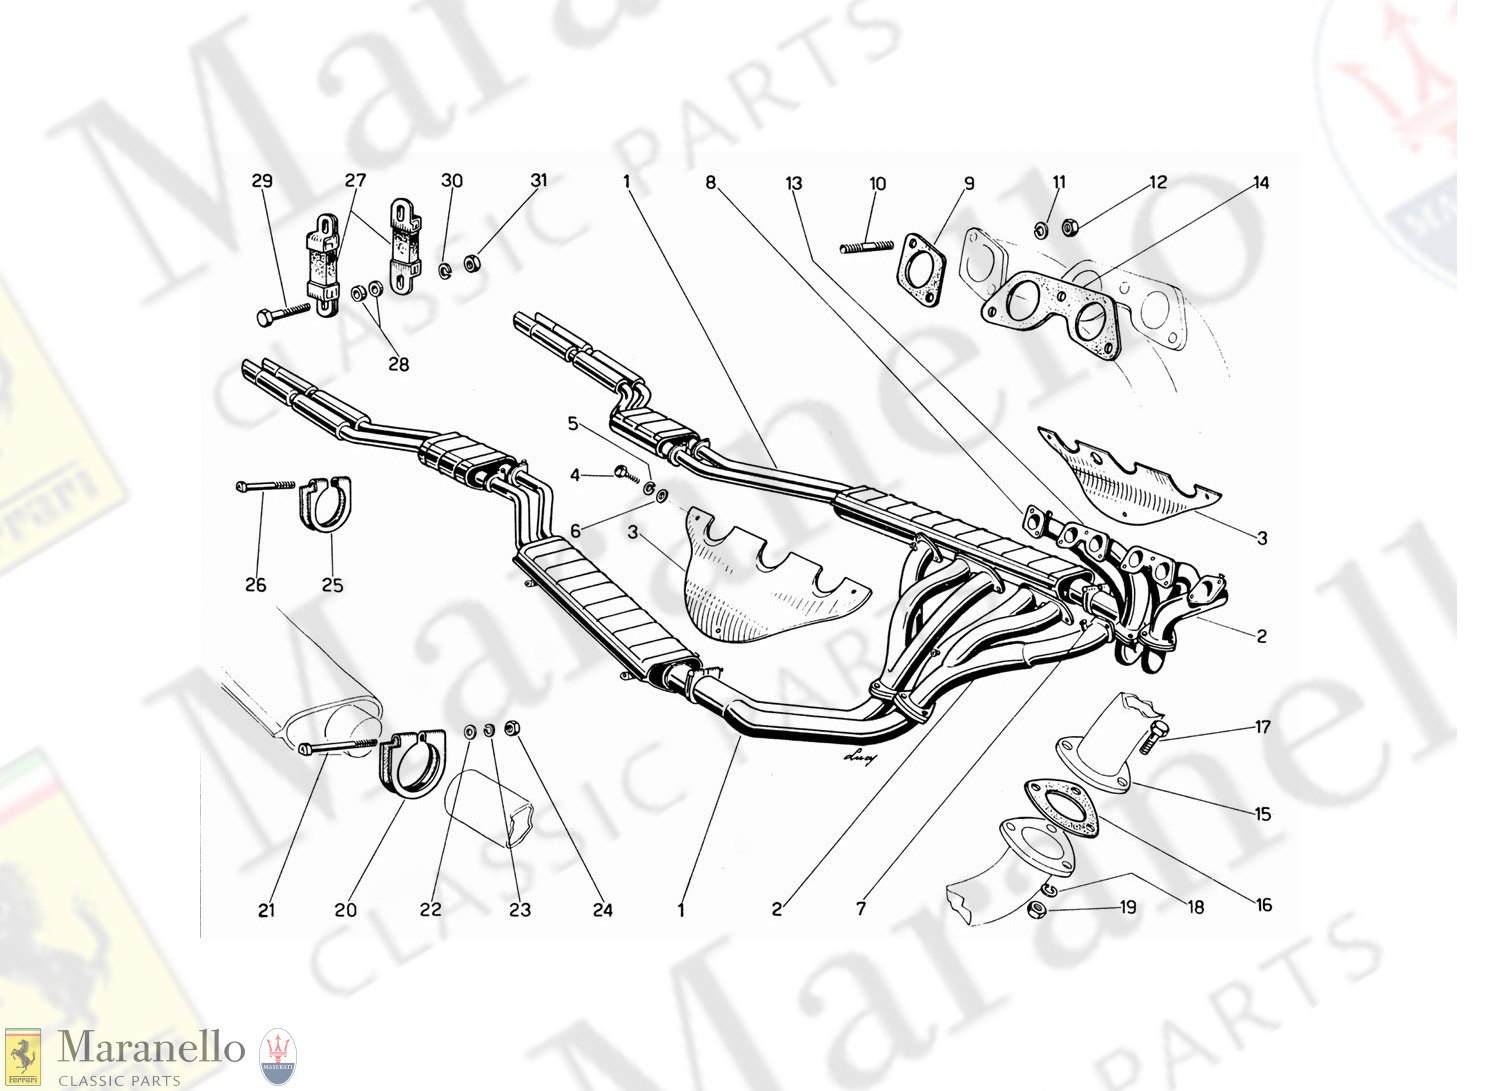 009 - Exhaust Manifolds, Silencers And Extensions